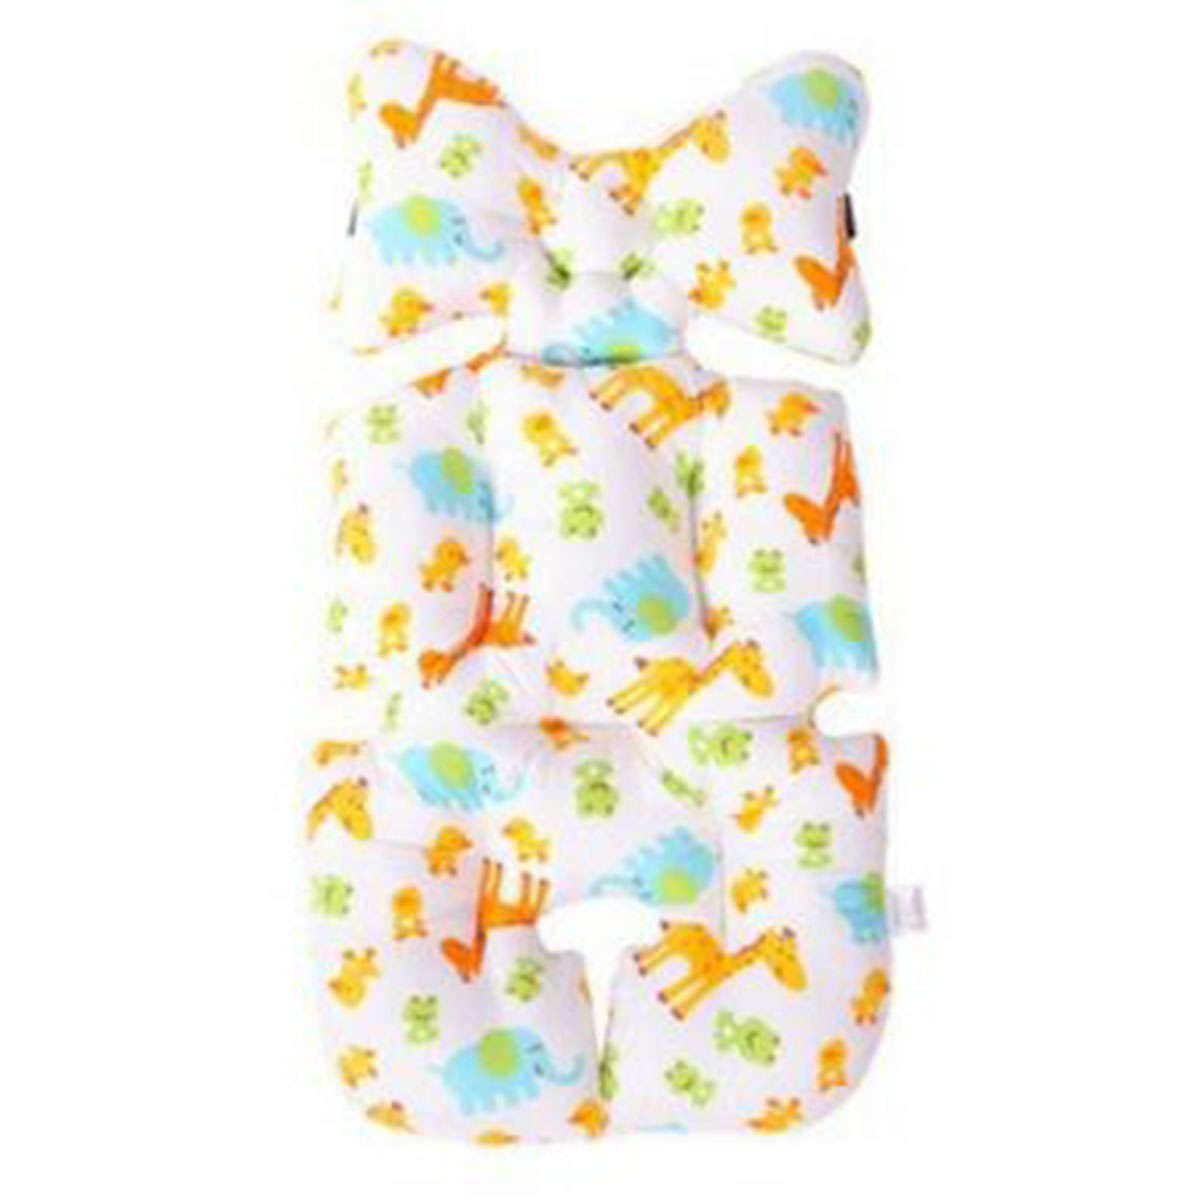 Baby Stroller Cotton Cushion Seat Cover Mat Breathable Soft Car Pad Pushchair Urine Pad Liner Cartoon Star Mattress Baby Cart Pretty And Colorful Mother & Kids